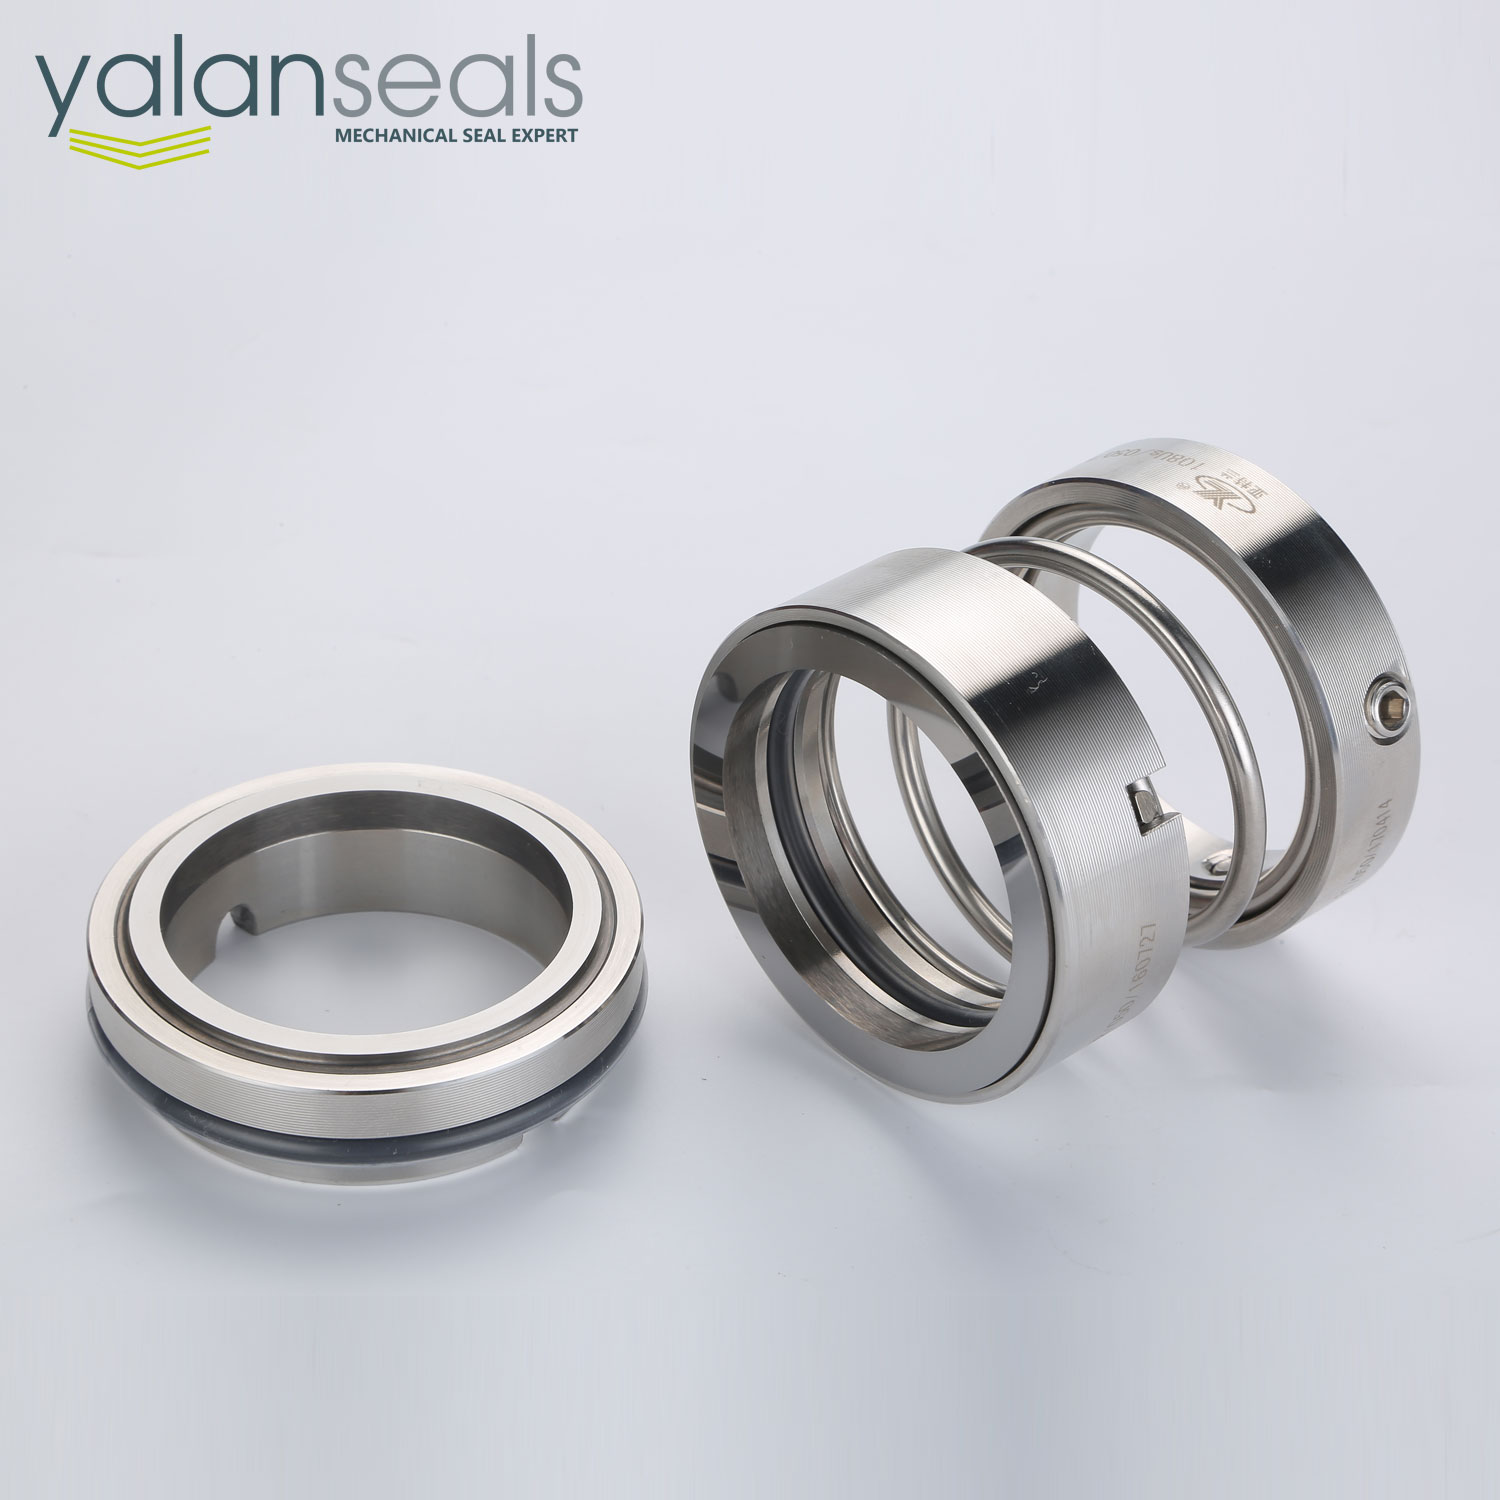 YALAN 108U Single Spring Mechanical Seal